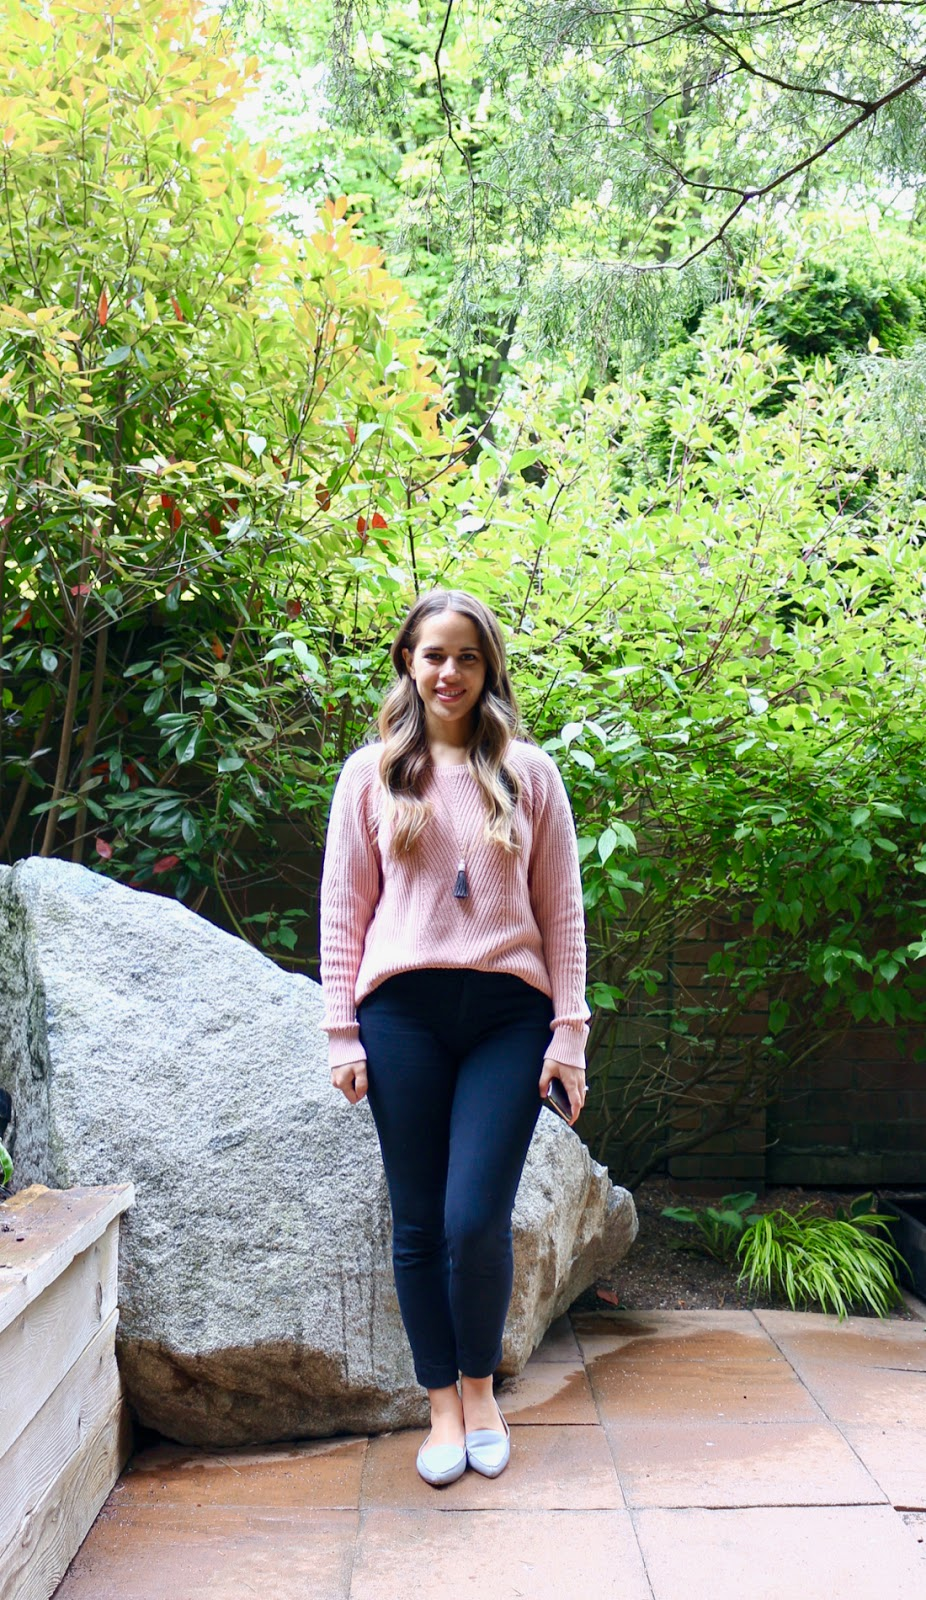 Jules in Flats - Gap Pink Lightweight Sweater (Business Casual Spring Workwear on a Budget)